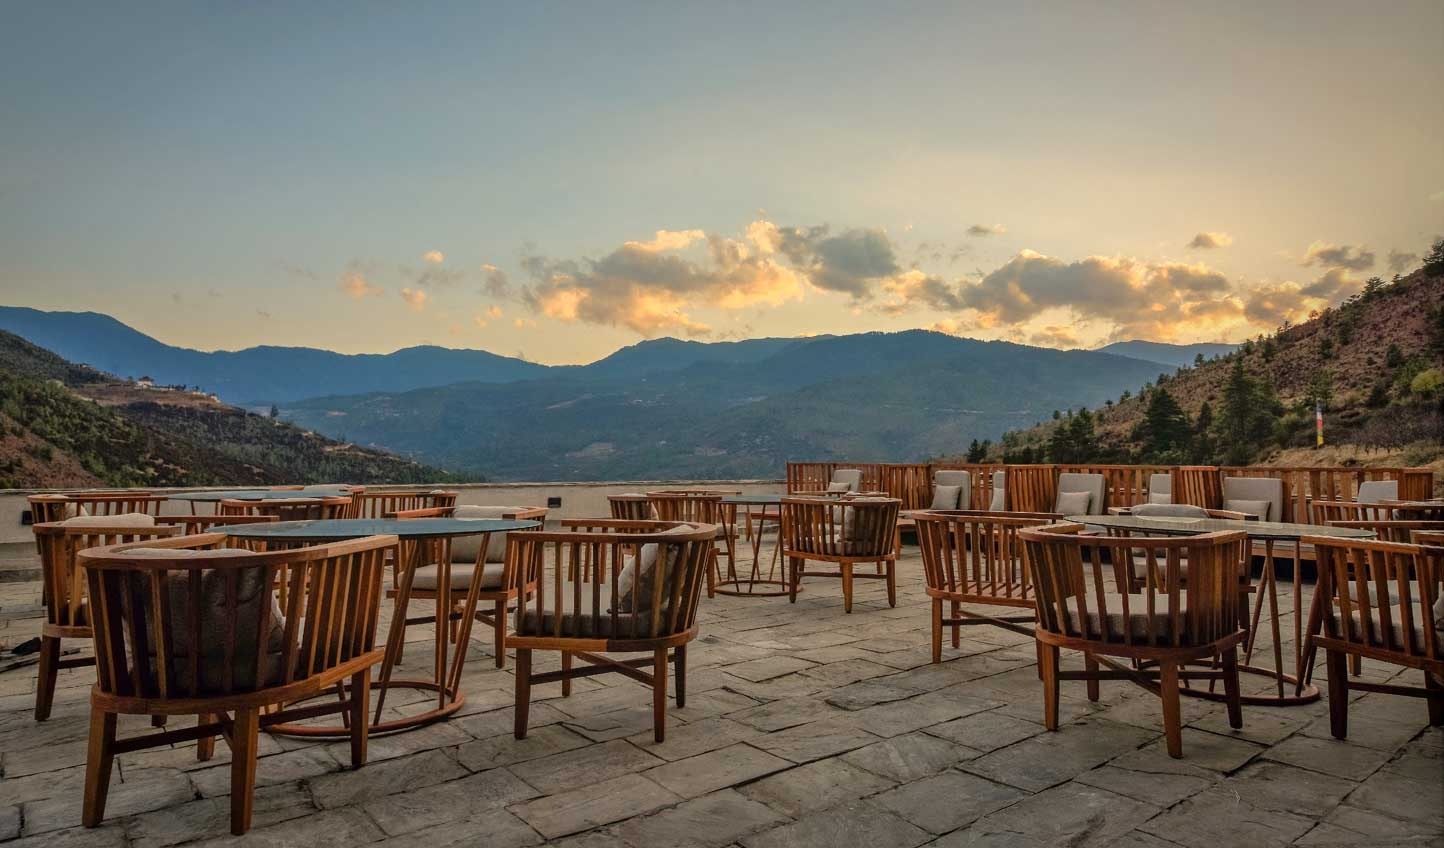 Dine beneath wide-open skies and soak up the atmosphere of this mesmerising part of the world